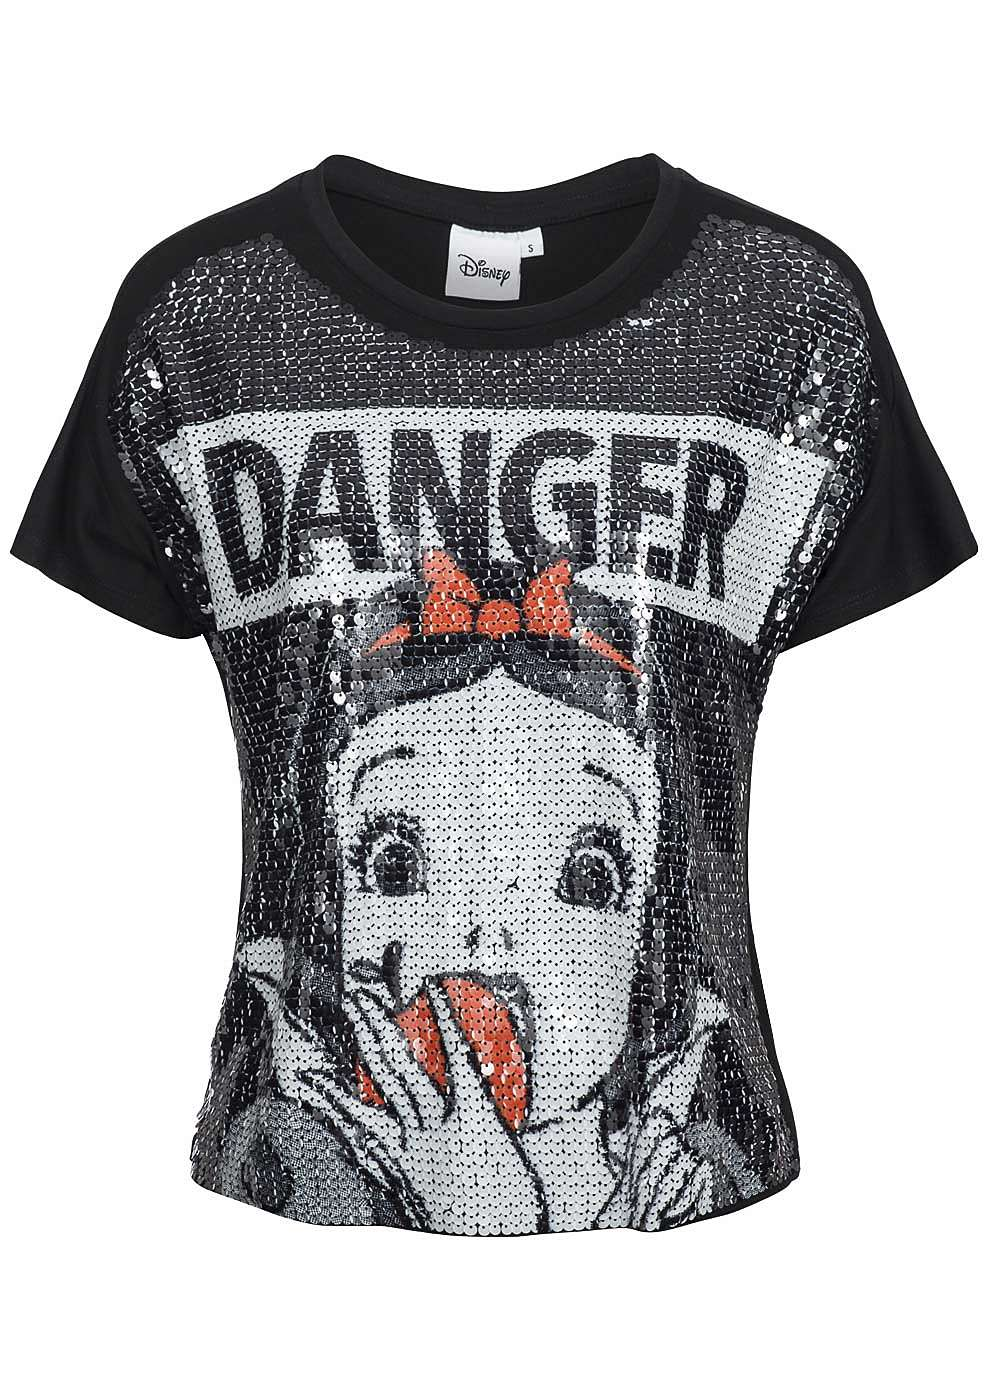 tally weijl damen t shirt pailletten danger motiv schwarz. Black Bedroom Furniture Sets. Home Design Ideas